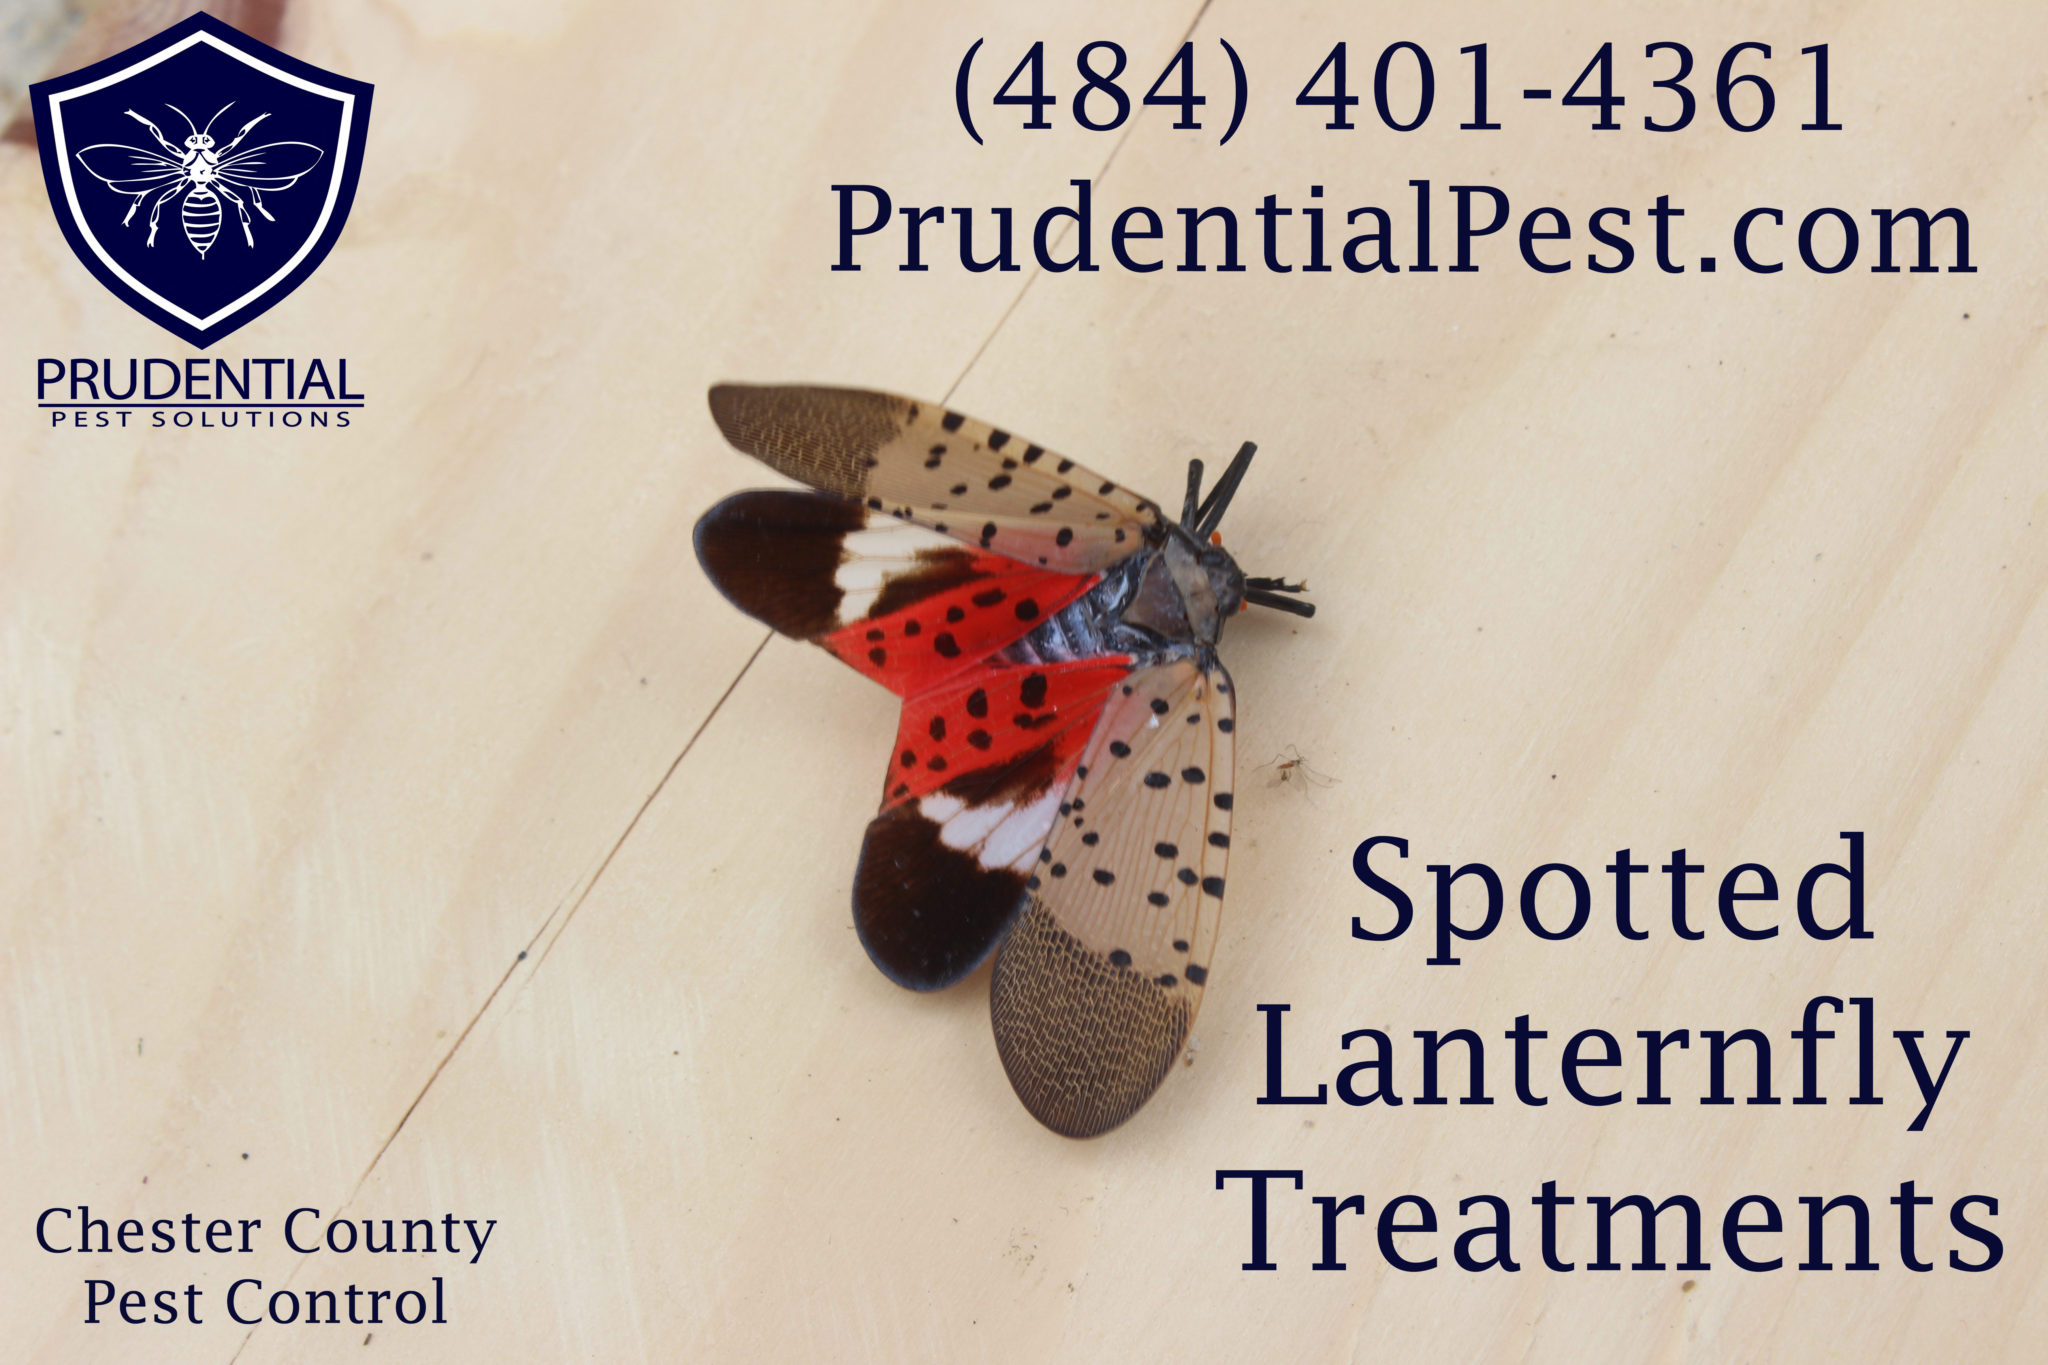 Spotted Lanternfly Treatments